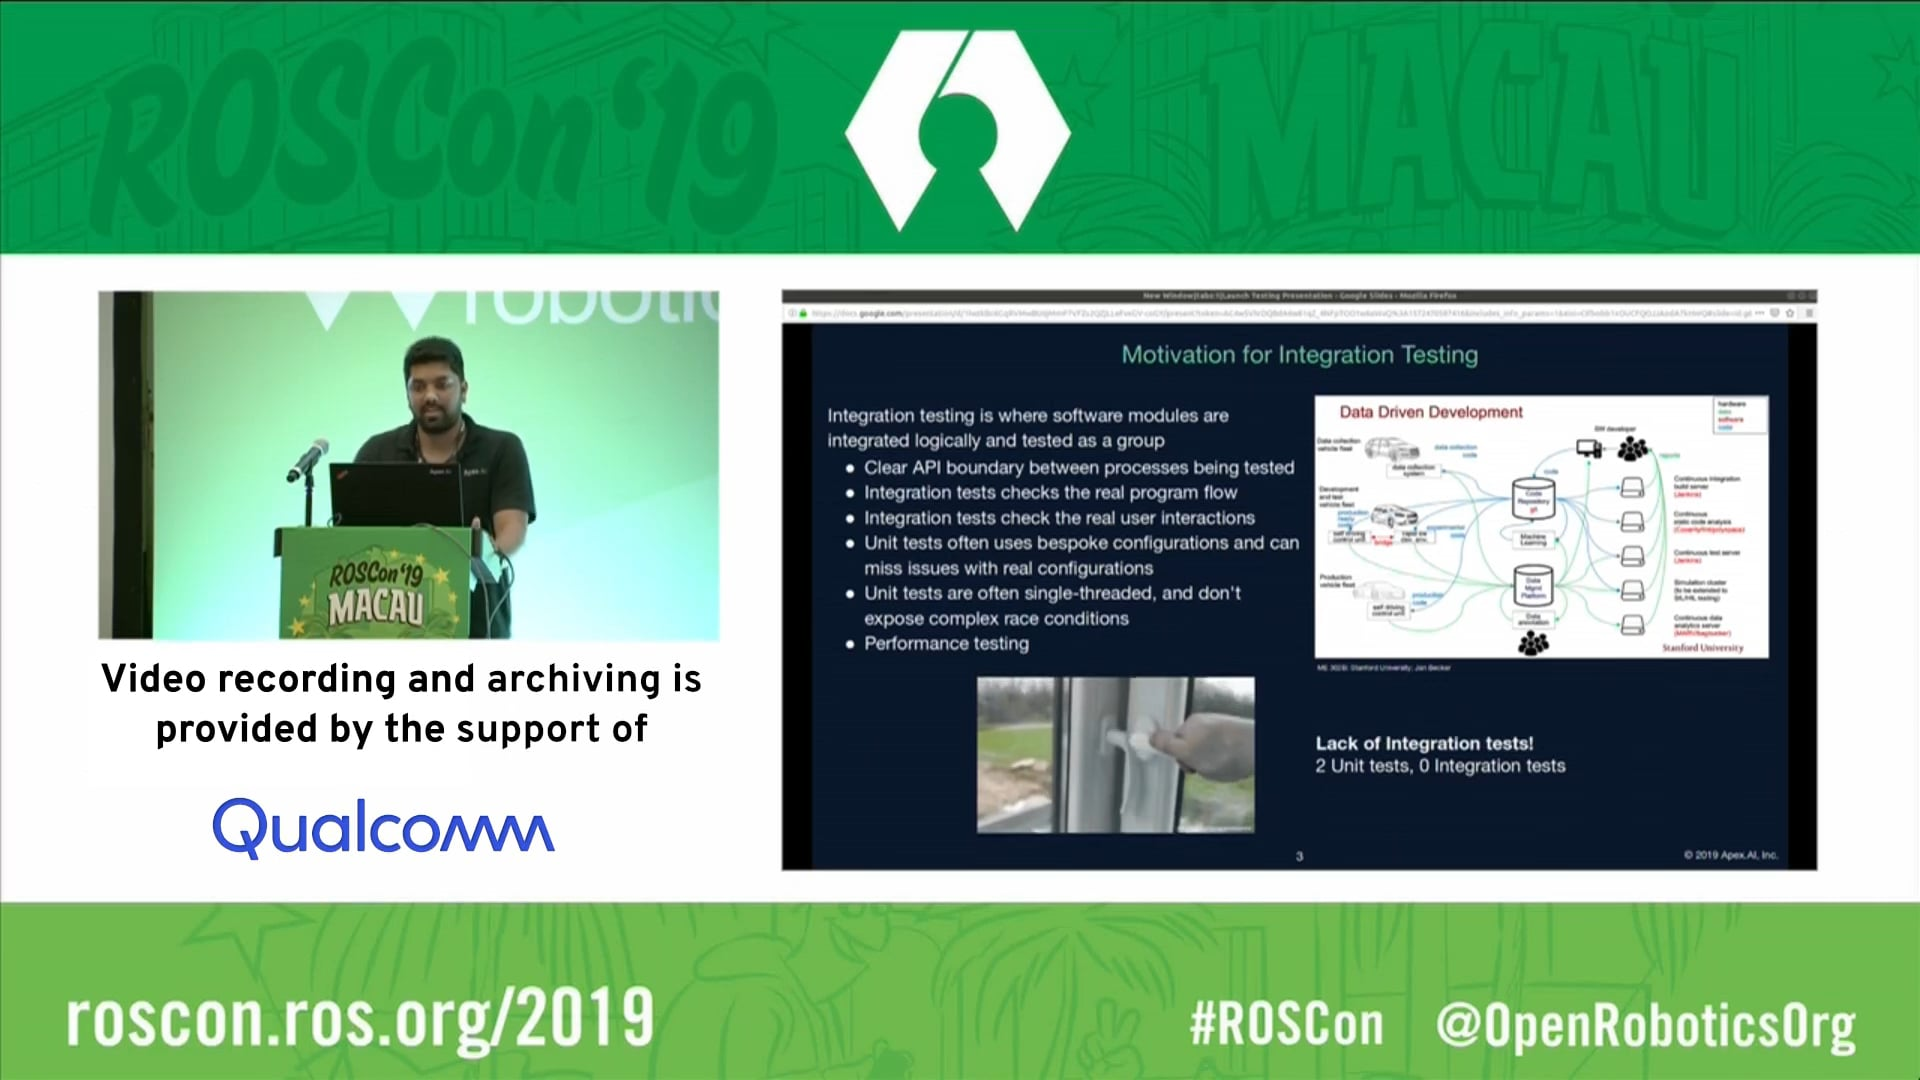 ROSCon 2019 Macau: Launch Testing - Launch description and integration testing for ros2